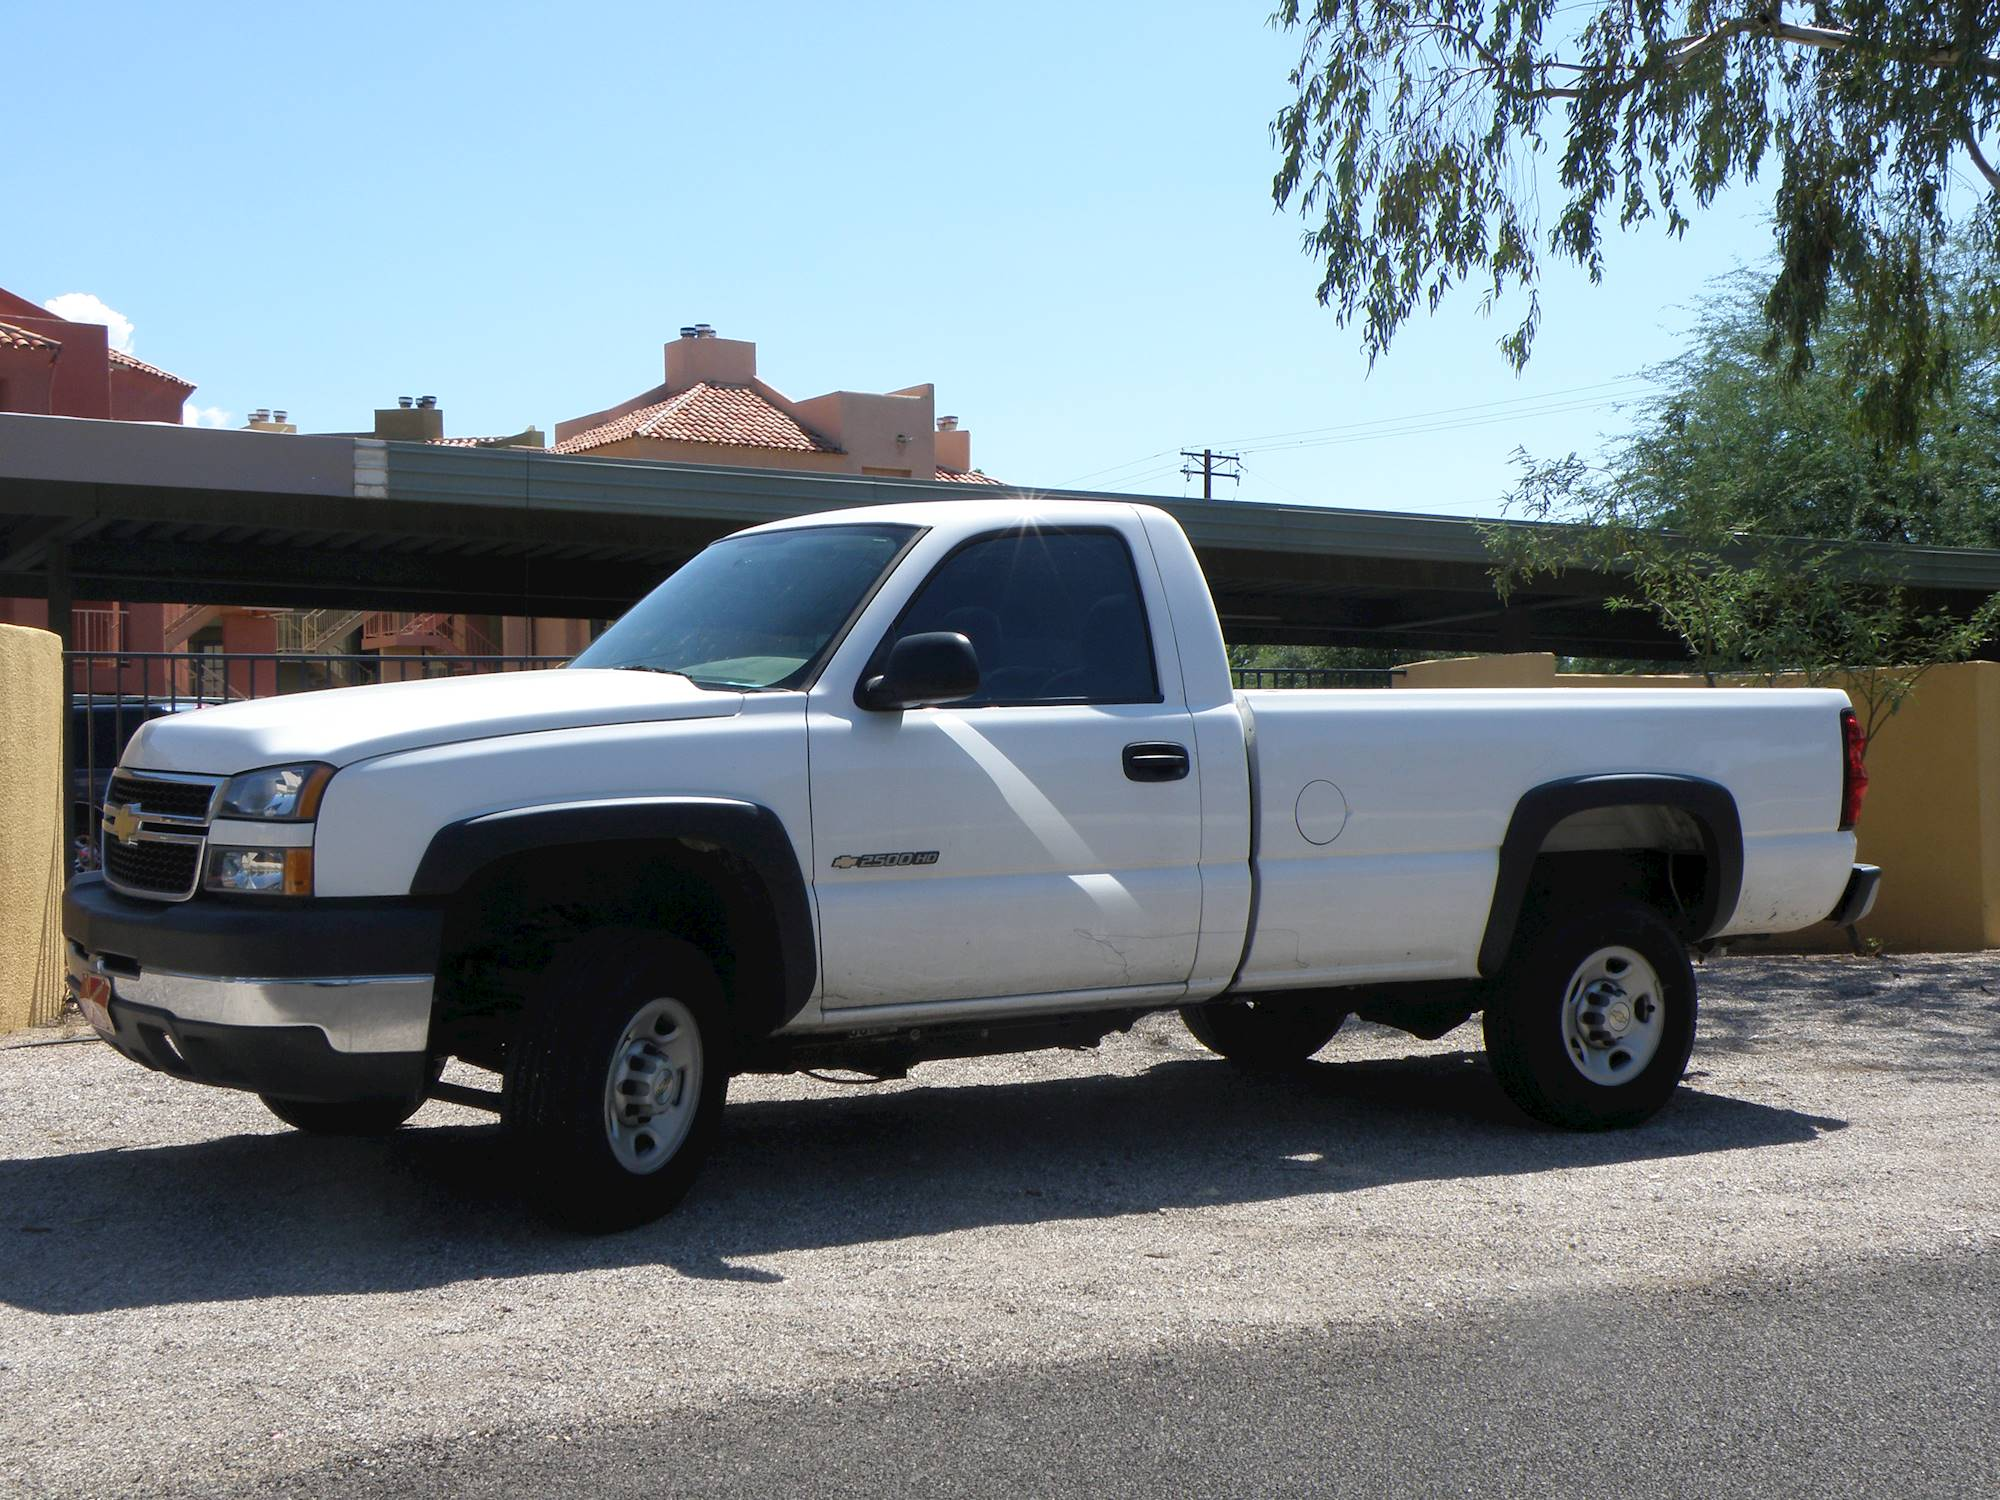 2005 Chevrolet Silverado 2500HD LT 4x4 Extended Cab 8 ft. box 157.5 in. WB 4-spd auto w/OD